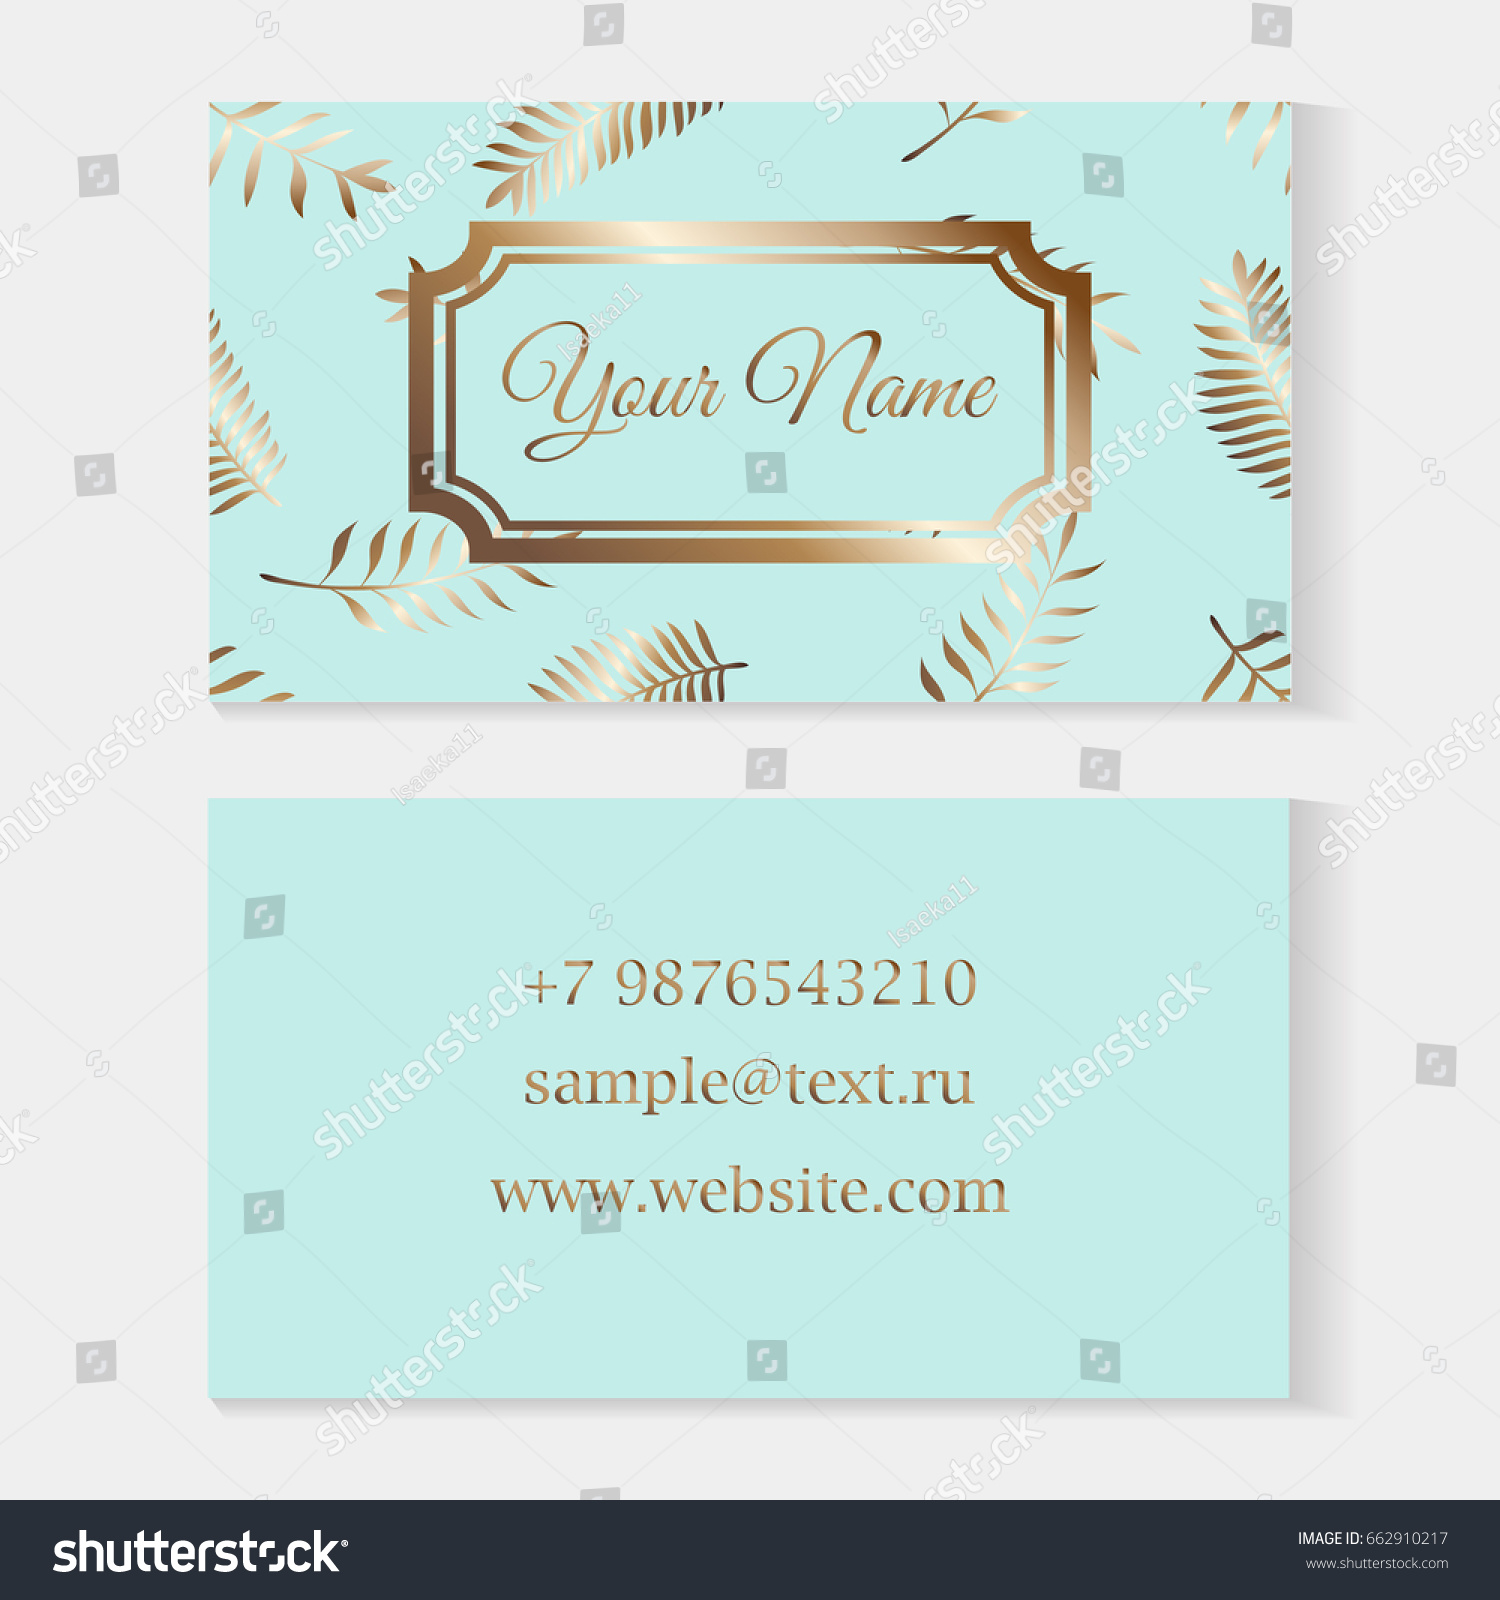 Floral Business Card Templates Fashion Cards Stock Vector ...